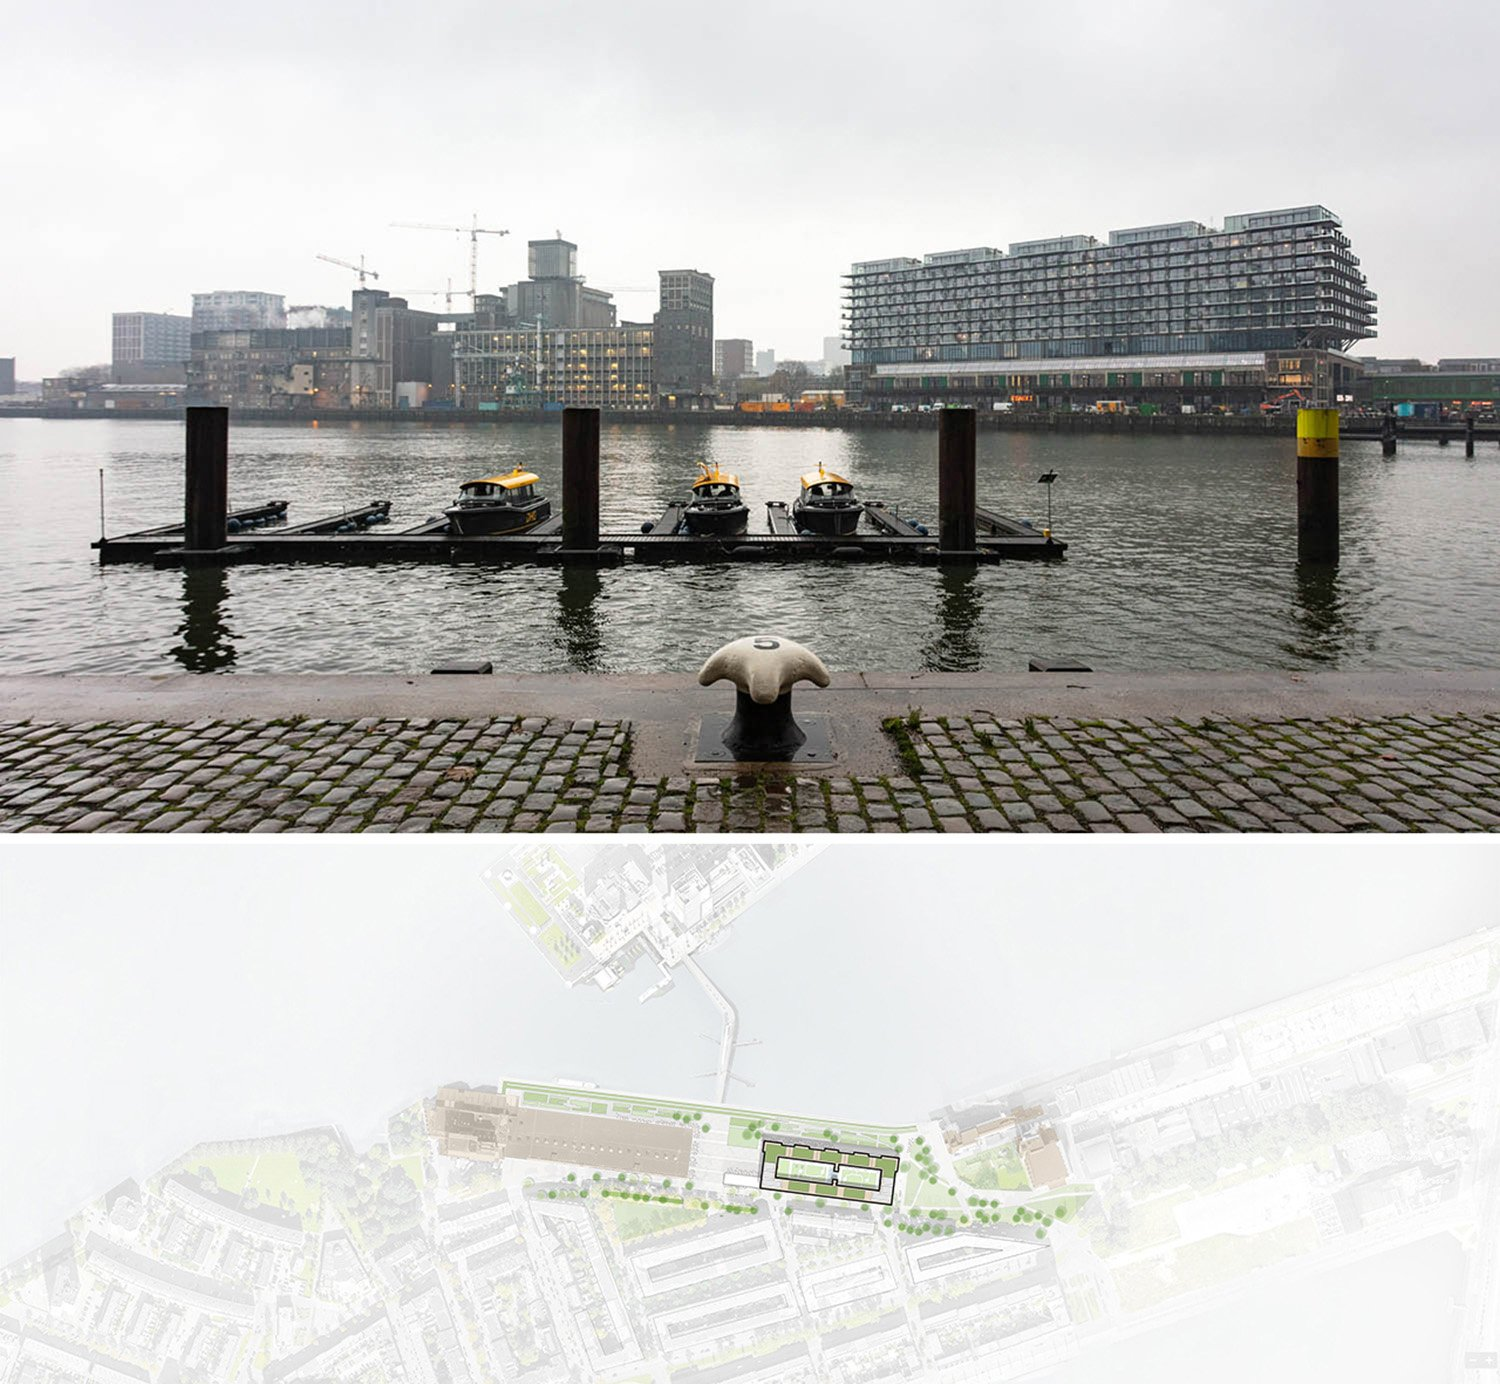 Mei architects and planners - Fenix I - Rijnhaven side and siteplan Marc Goodwin